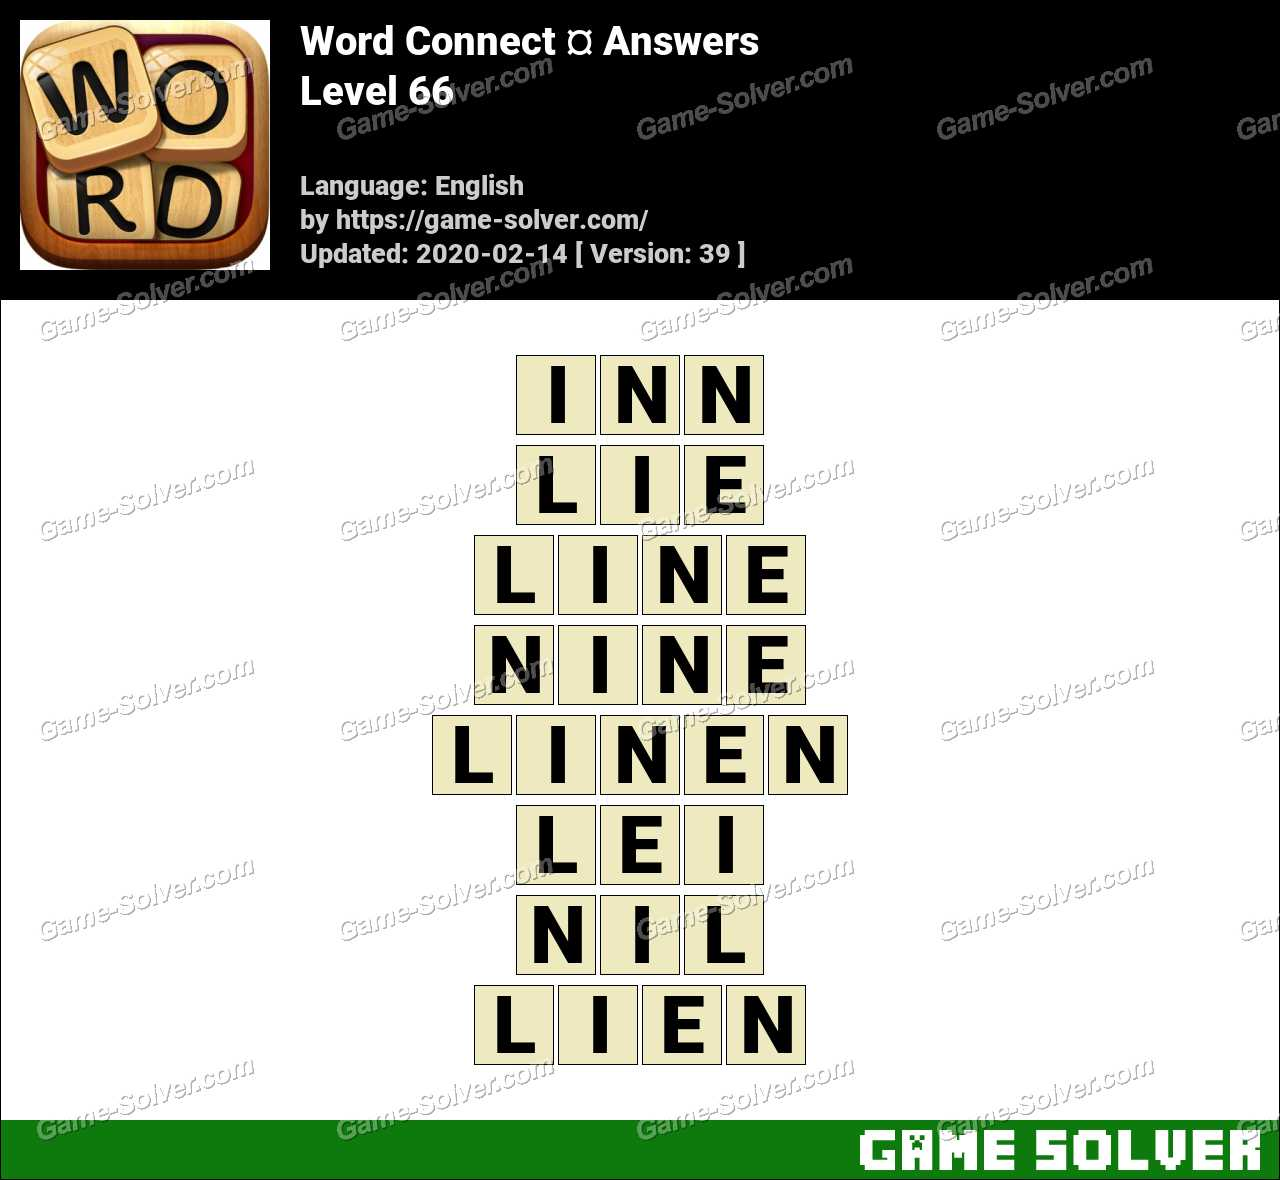 Word Connect Level 66 Answers